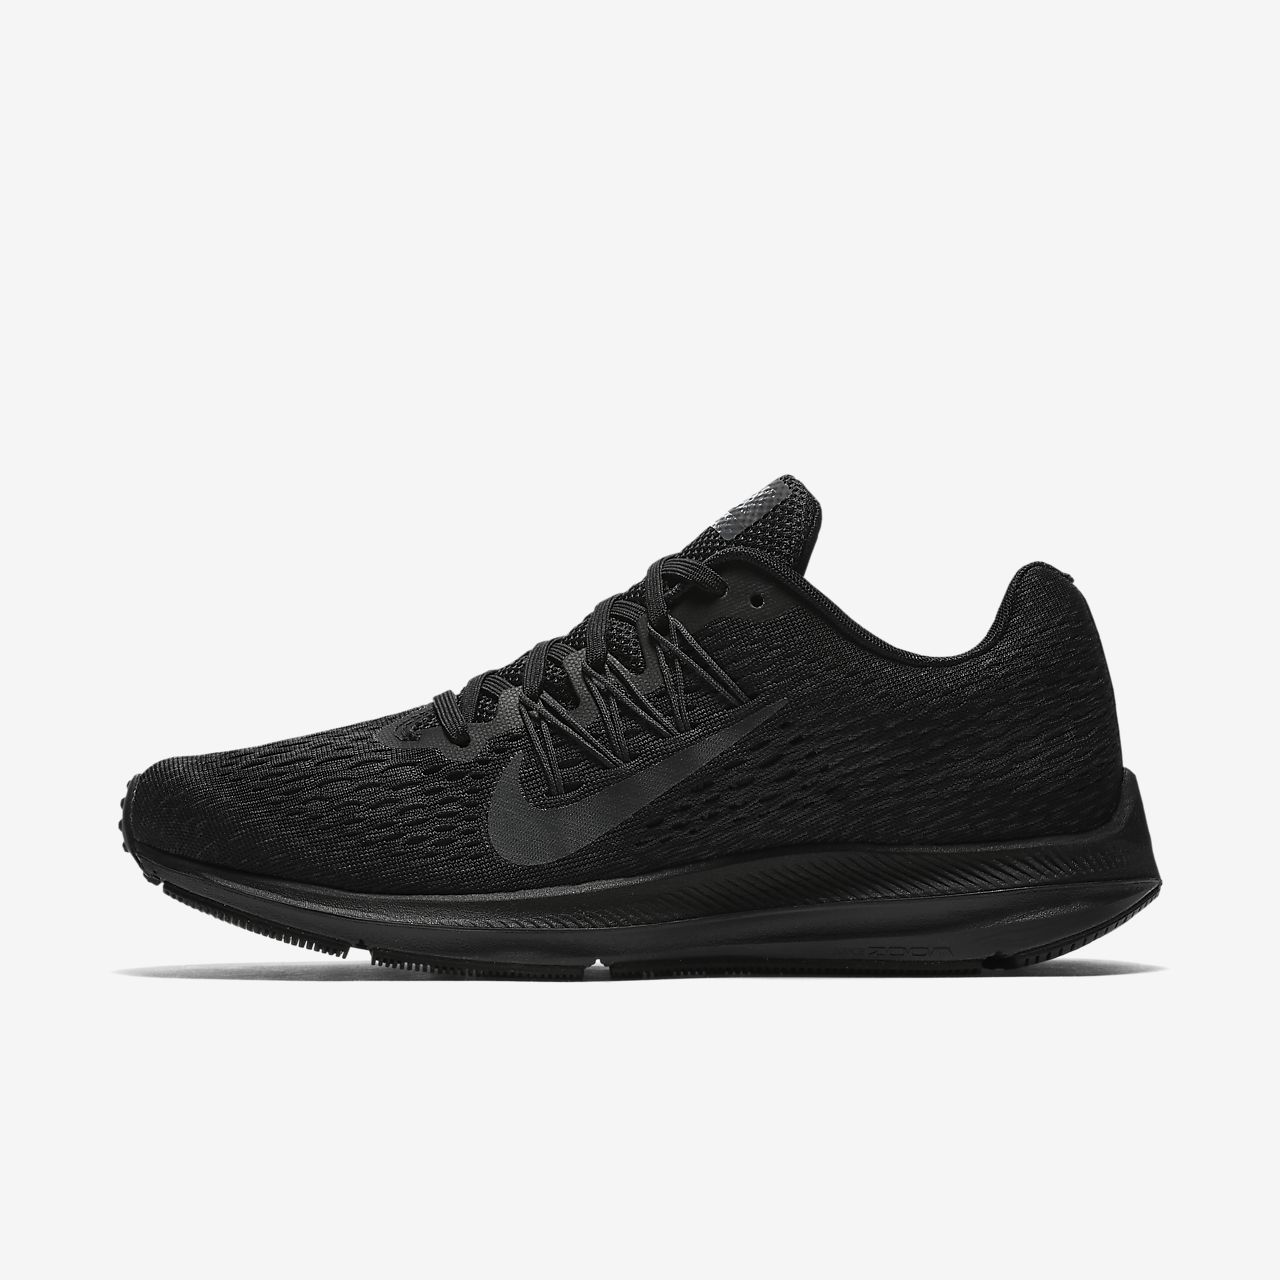 4e0365833f low price mens nike zoom winflo 5 black gold shoes 1dca0 40df4